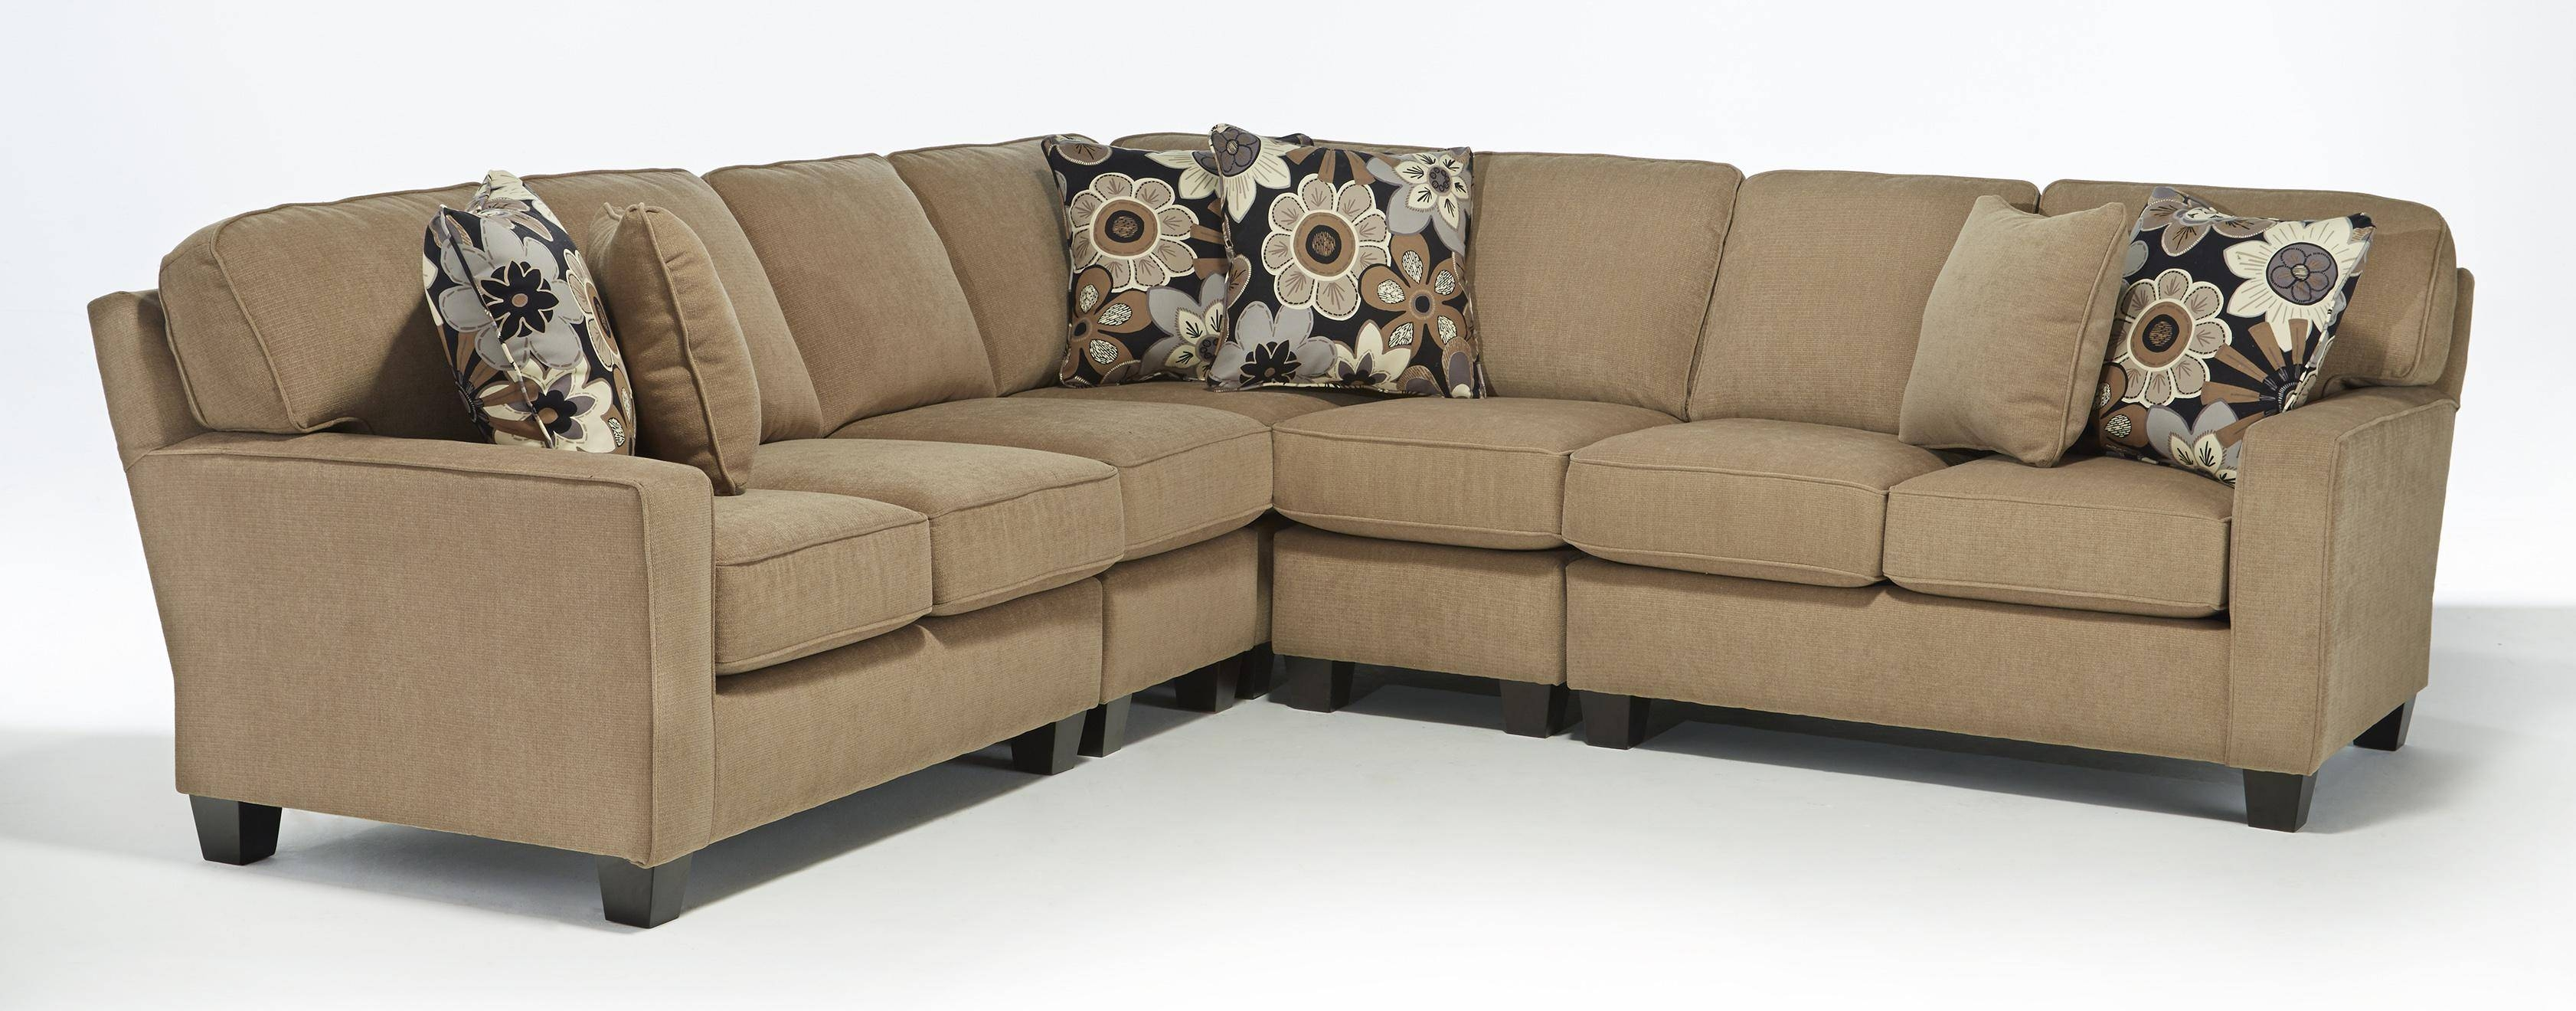 Five Piece Customizable Sectional Sofa With Track Arms And Wood in Custom Made Sectional Sofas (Image 13 of 30)